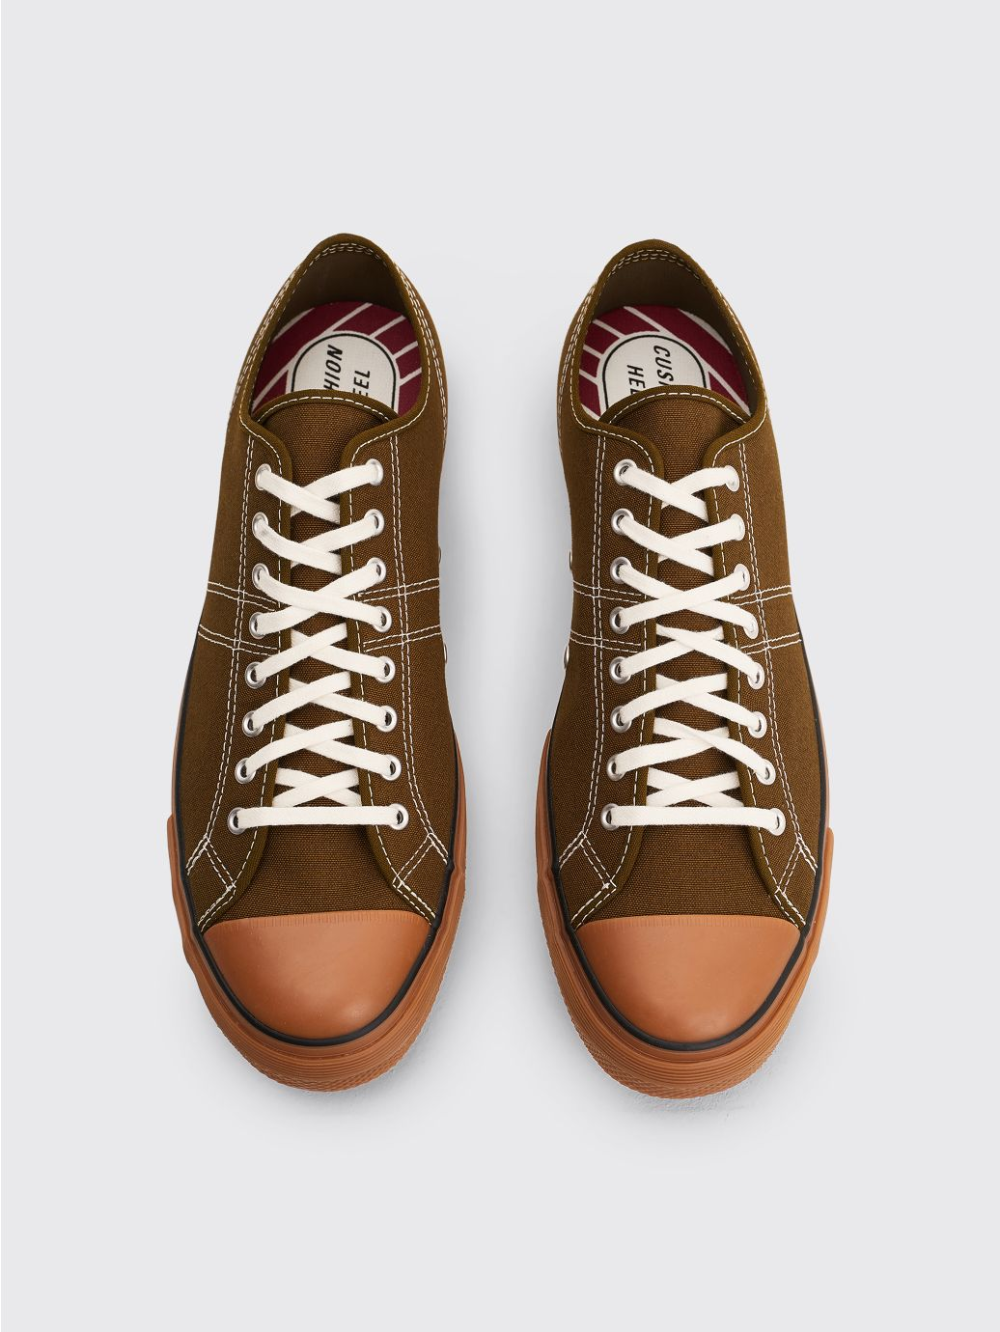 Converse Lucky Star Canvas OX Surplus Olive in 2020 | Lucky